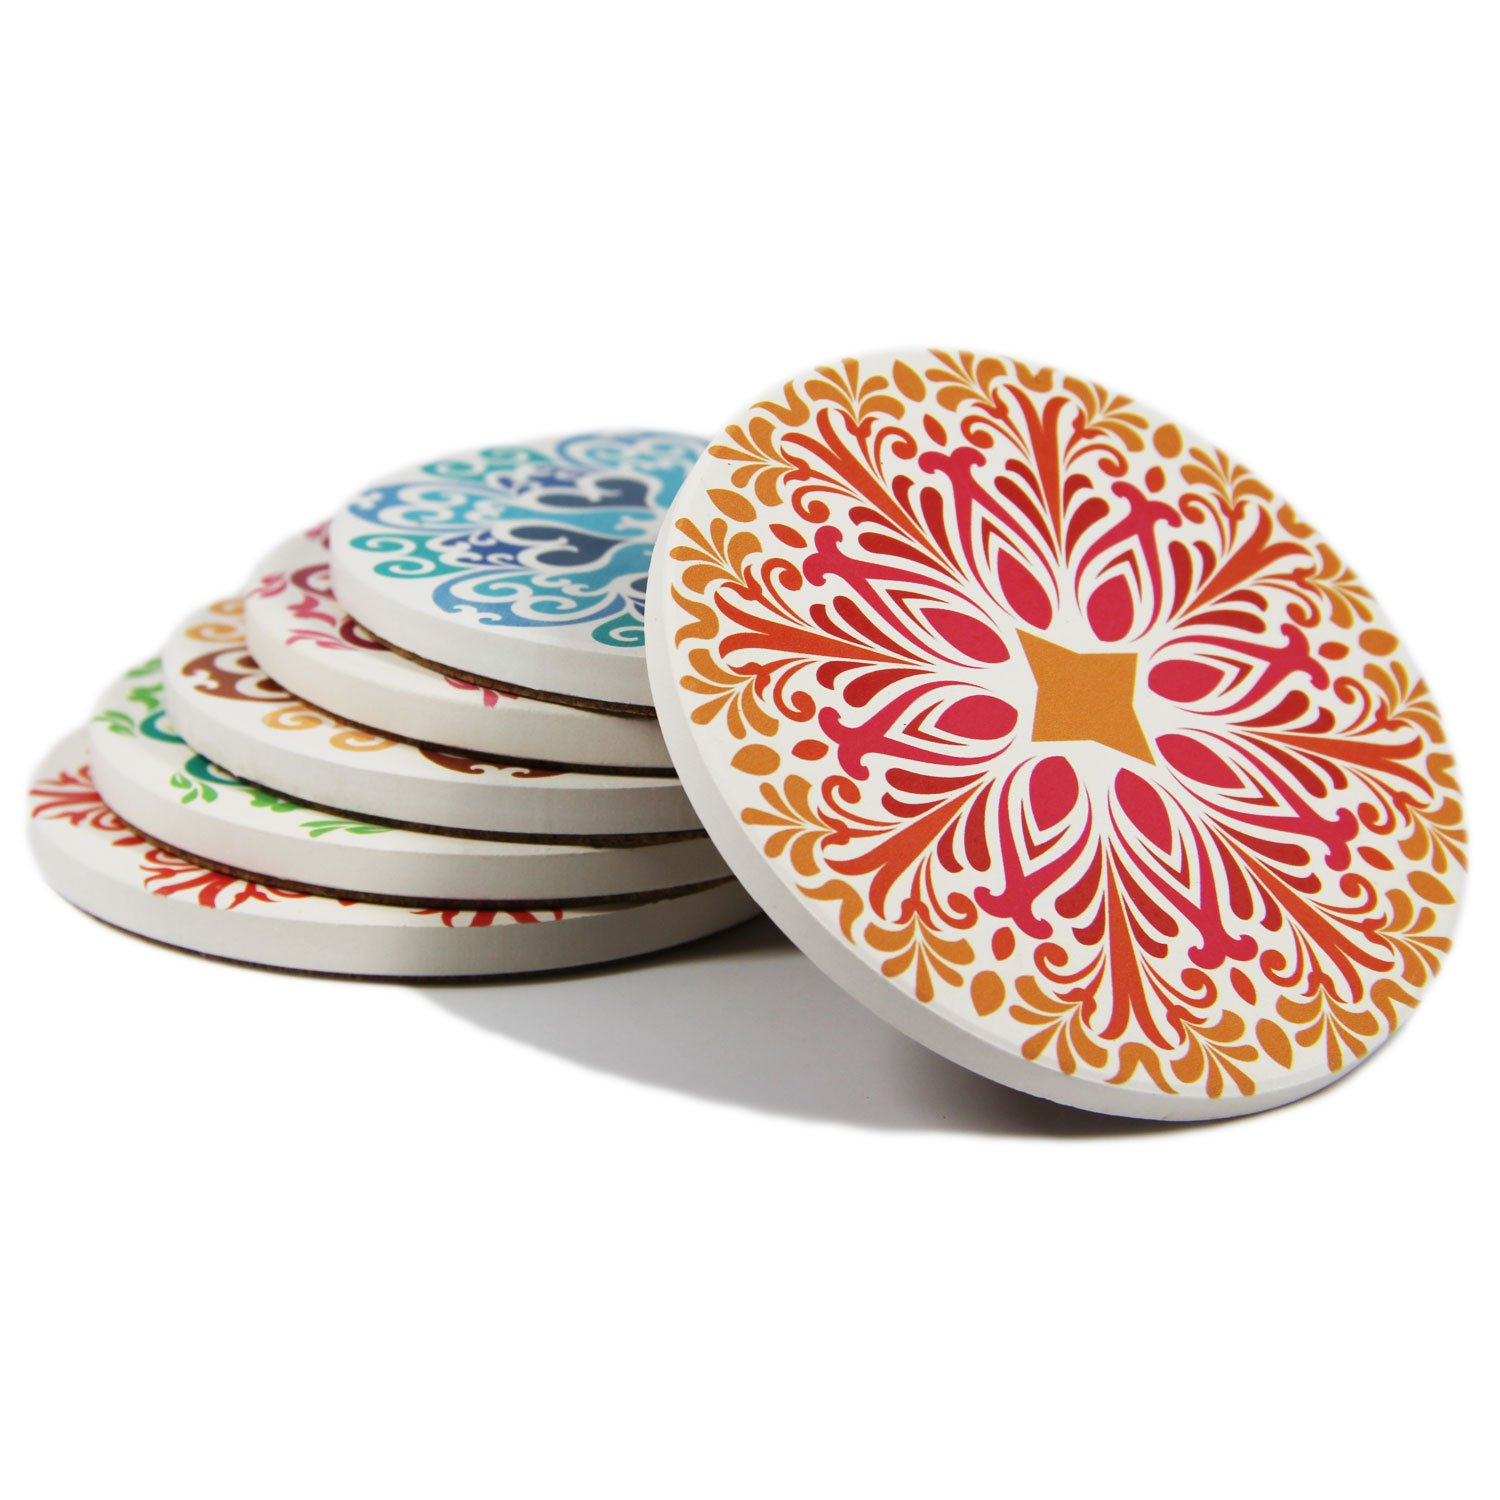 Coasters Set of 6 Absorbent Stone Coaster for Drinks - Desktop Protection Prevent Furniture Damage - Colorful Mandala Style Tabletop Drink spills Coasters